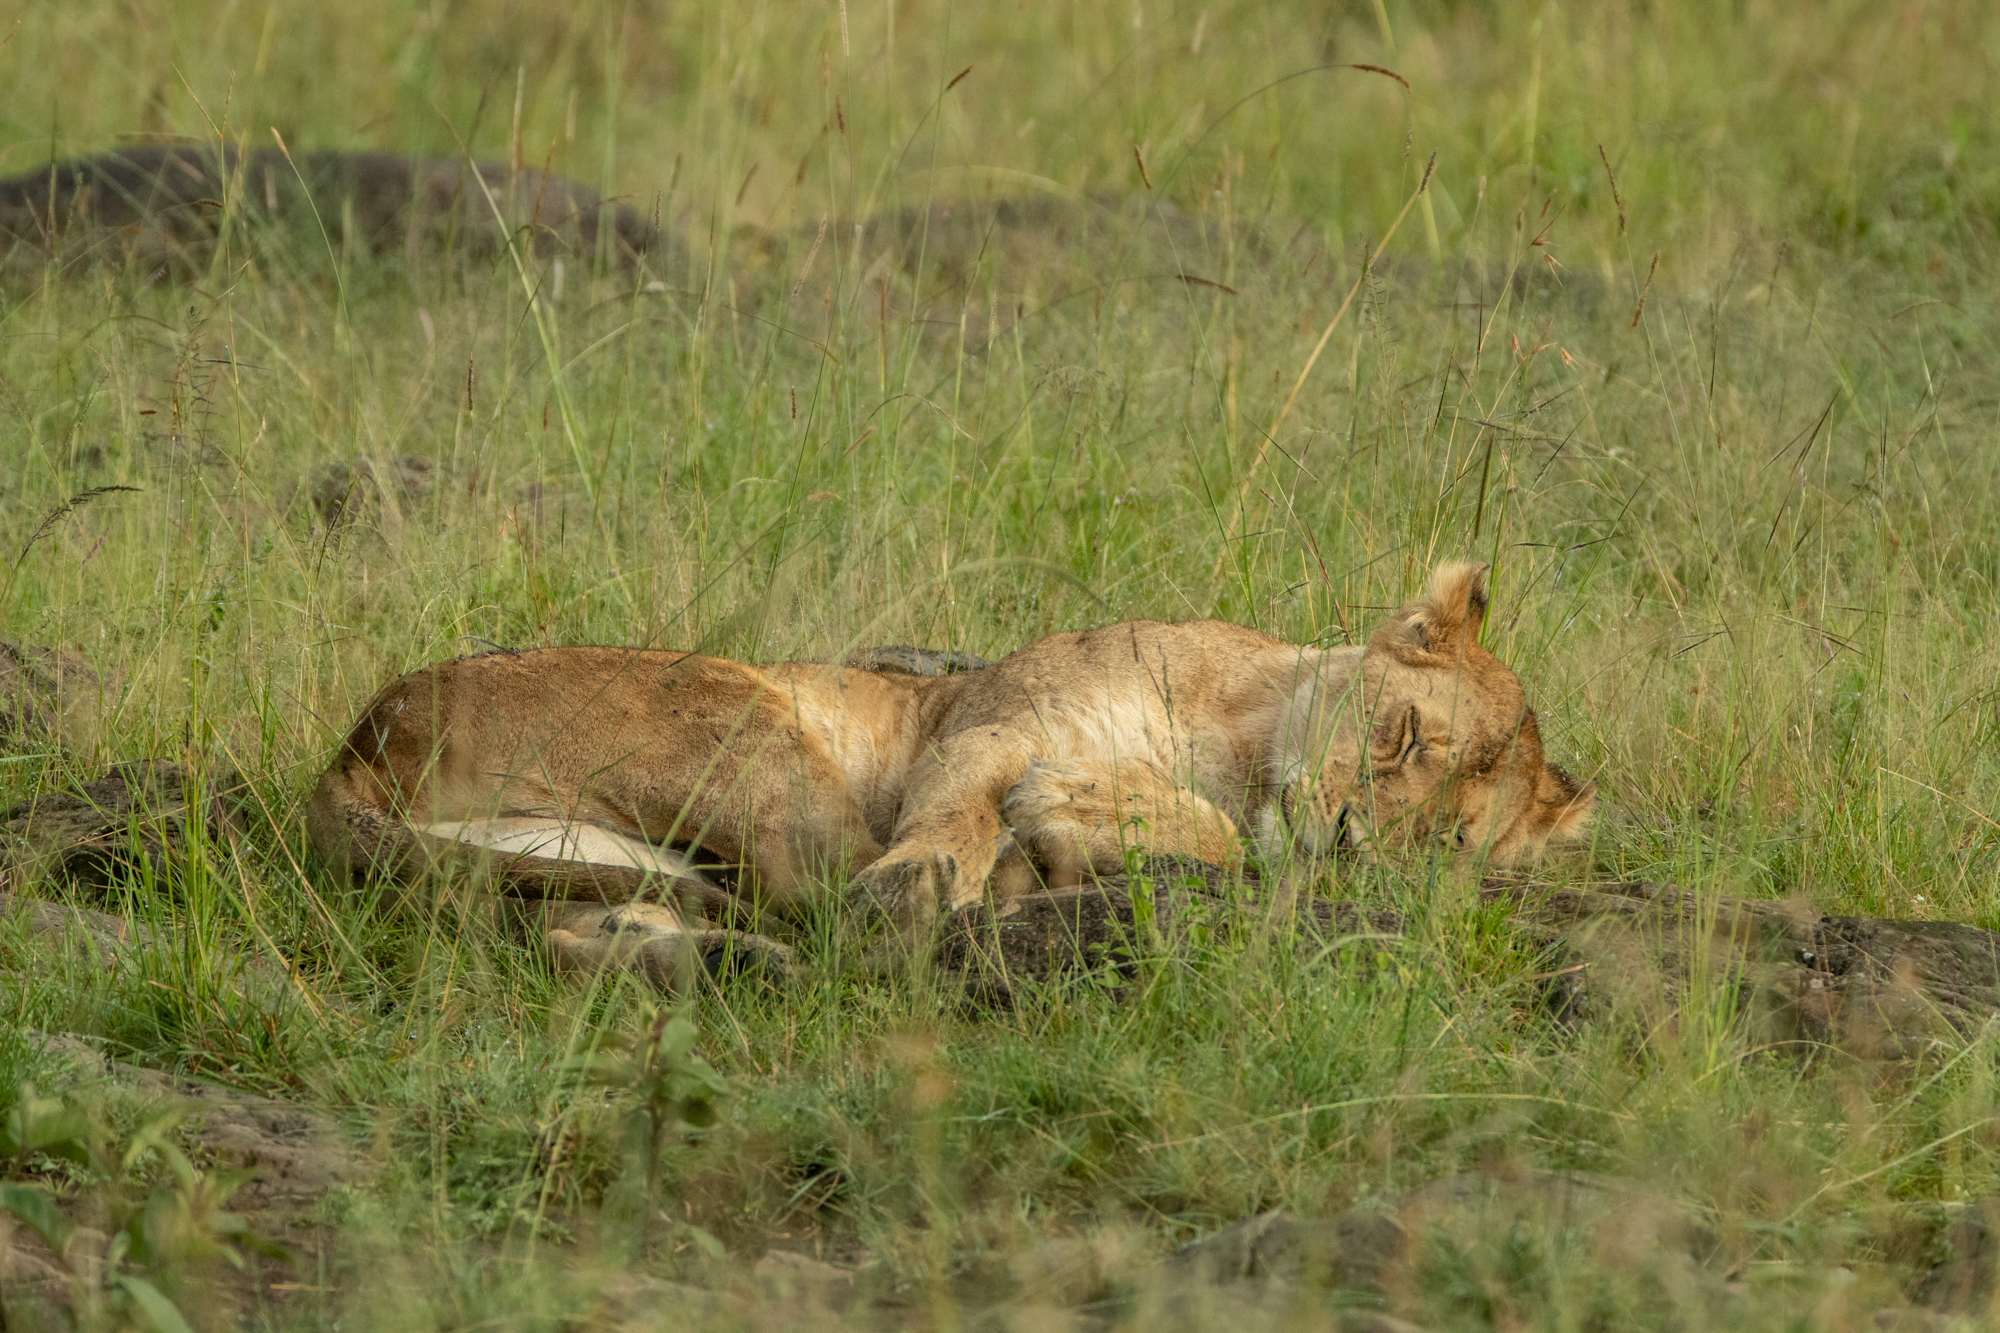 Kenya Rekero Lion Sleep Steve Winter